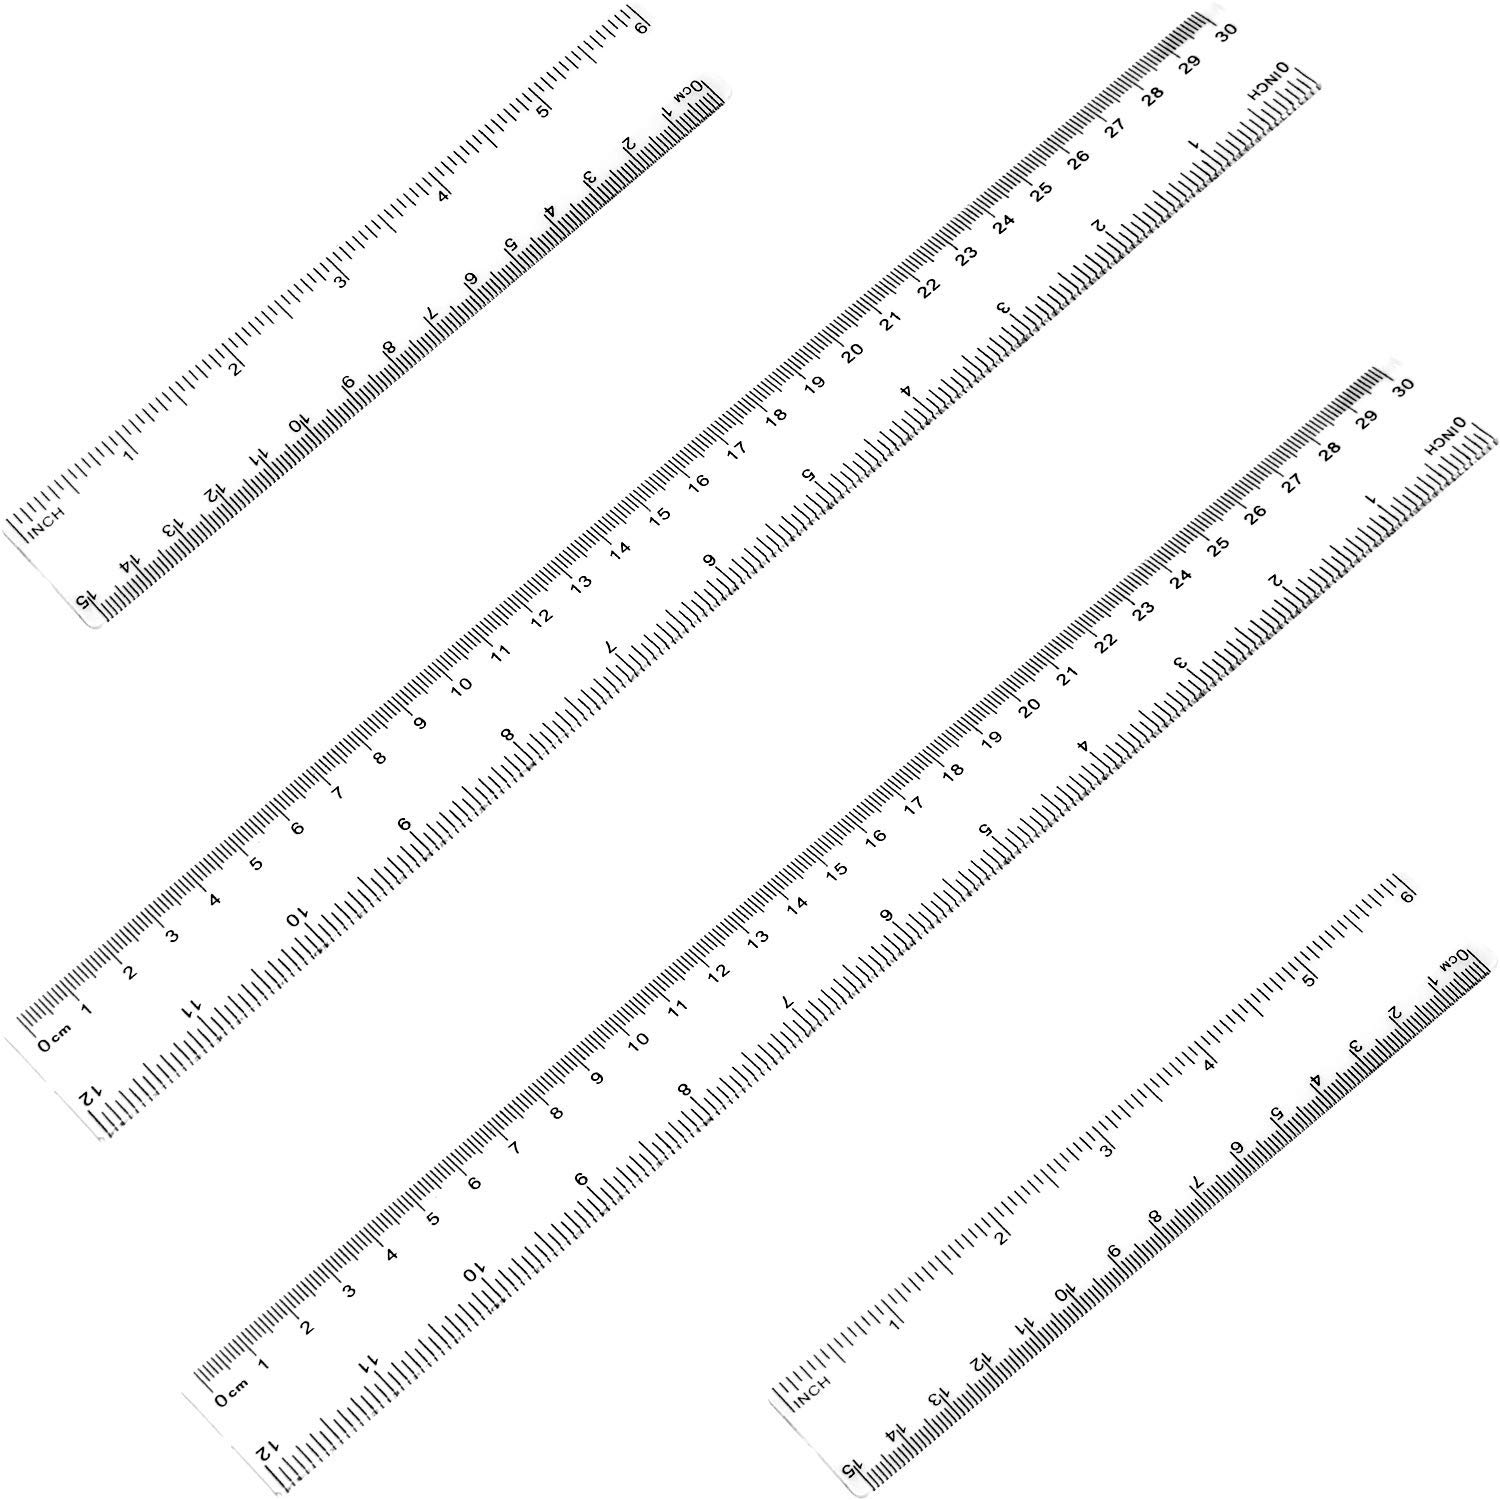 Ruler 12 inches & 6 inches ATOOL Plastic Ruler Straight Ruler Plastic Measuring Tool for Student School Office, Clear, 4 Pack